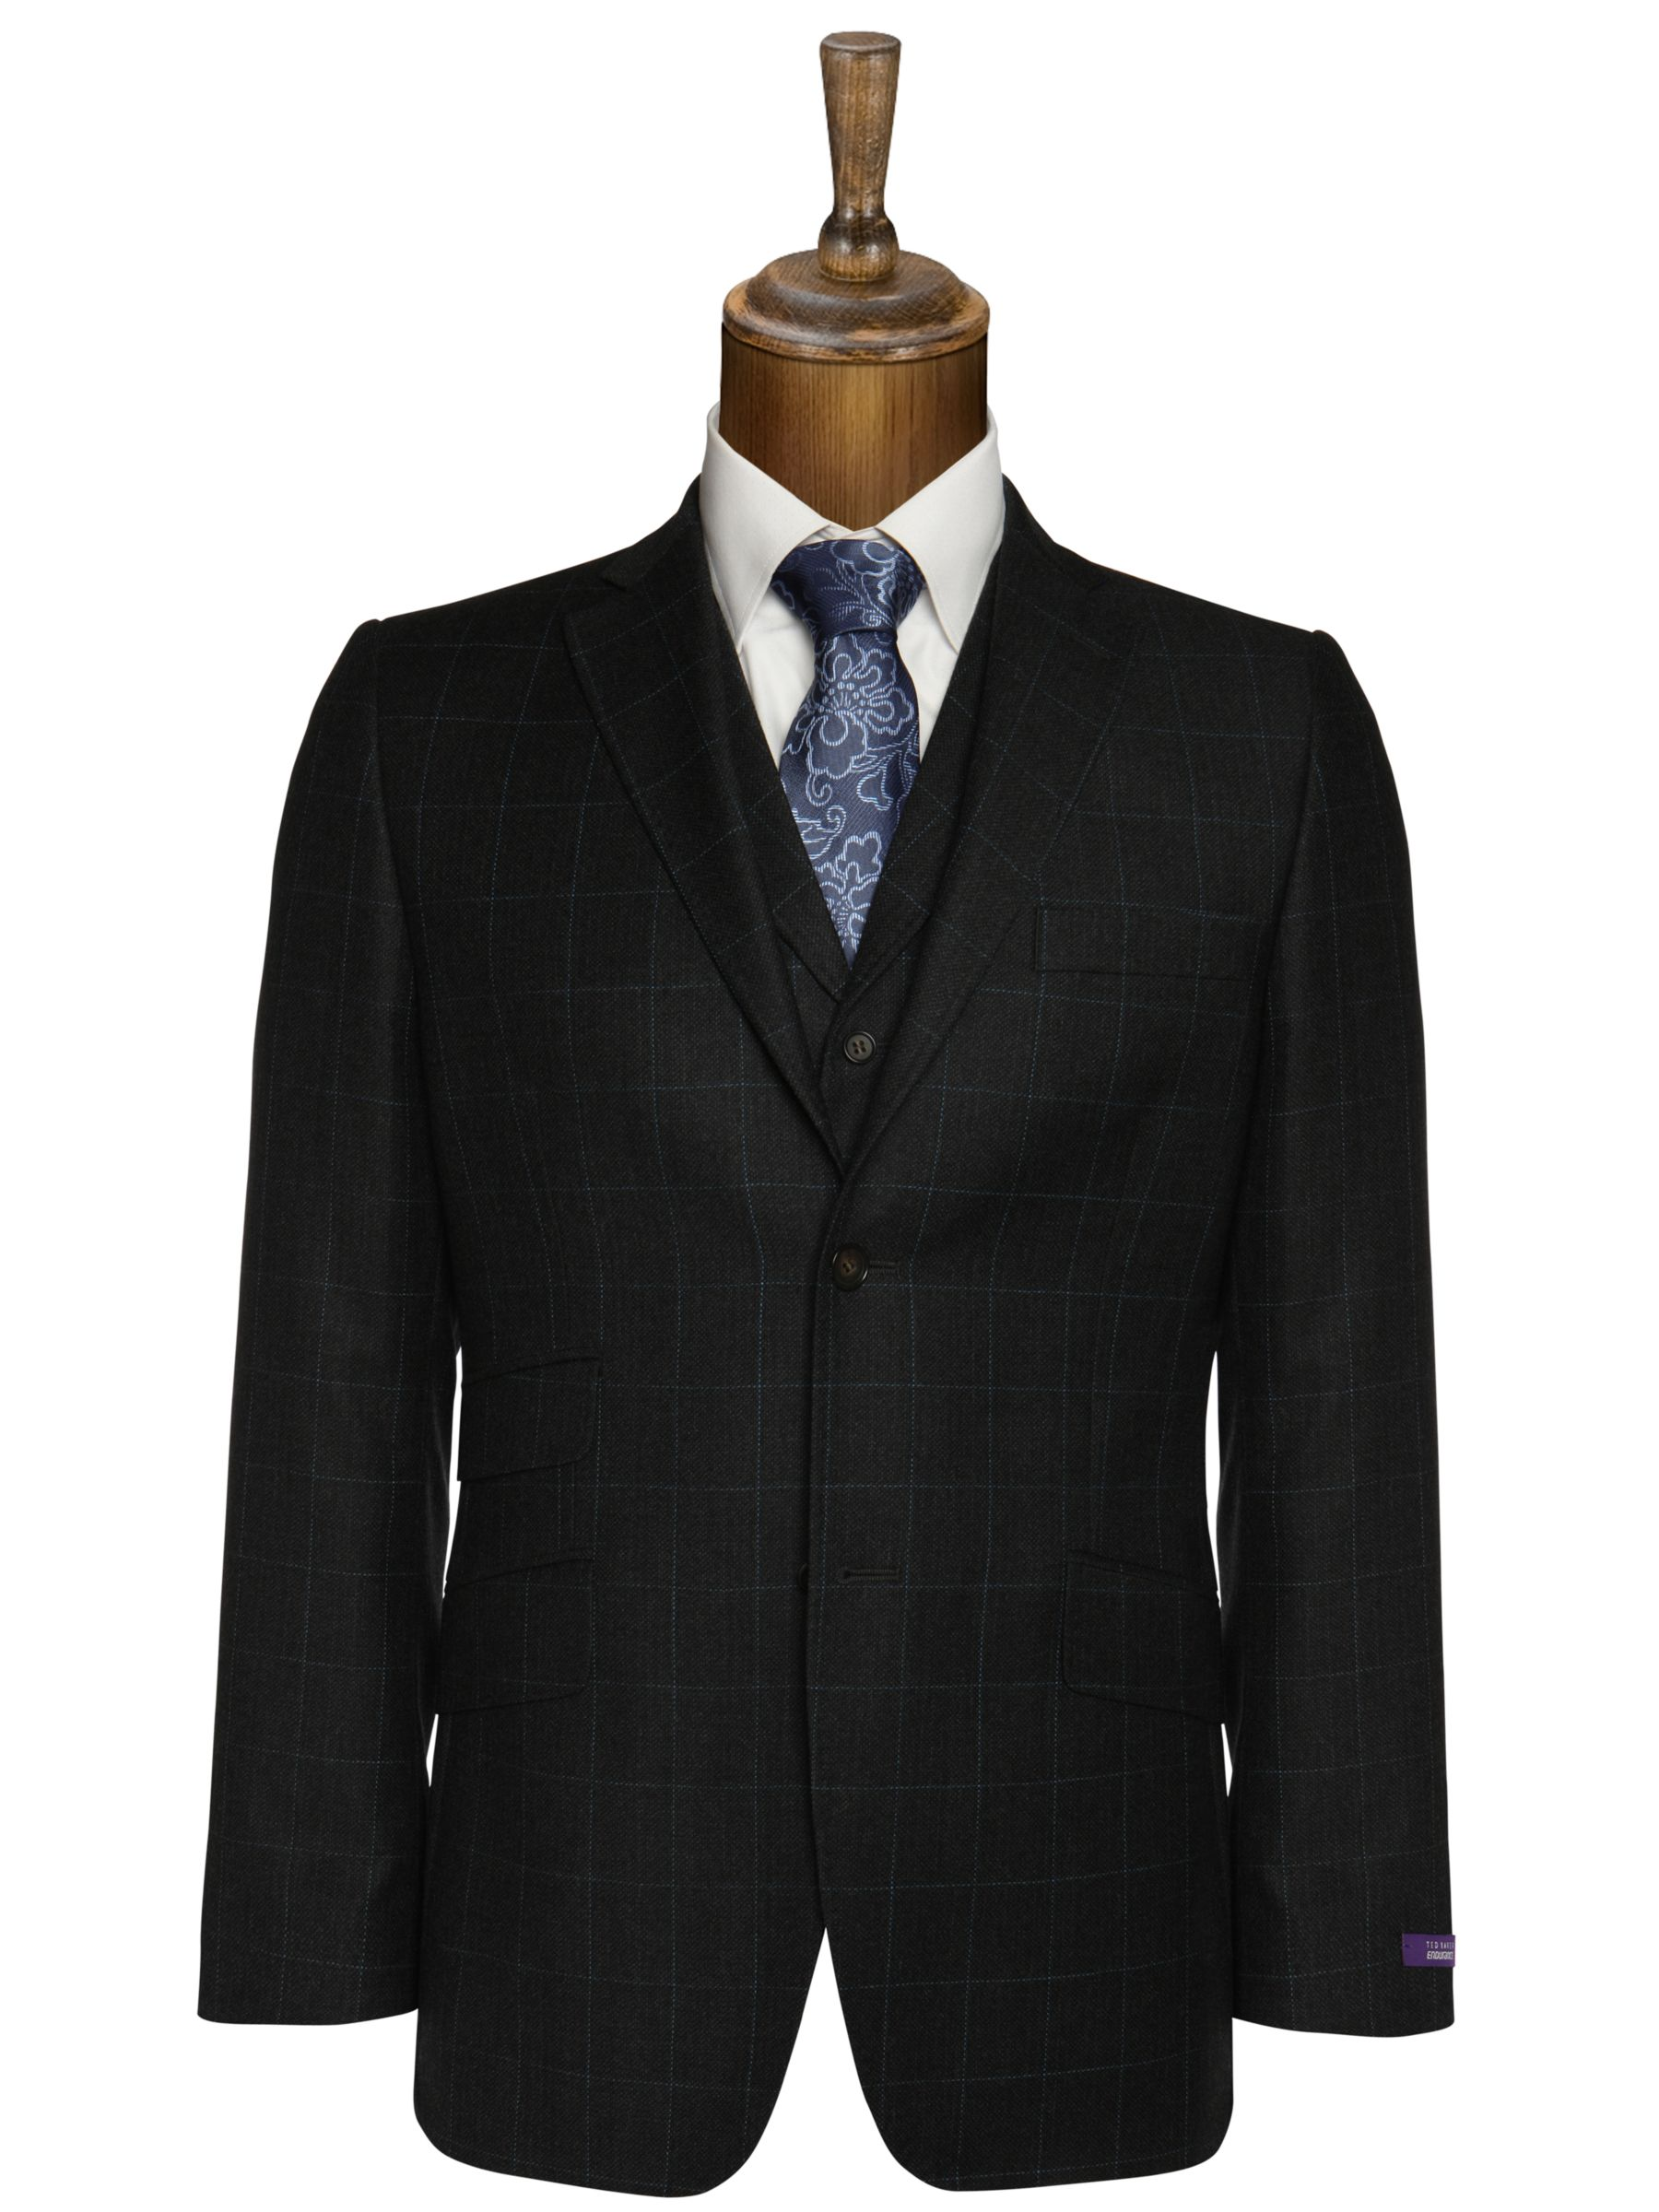 Ted Baker Mytho Over Check Jacket, Charcoal at JohnLewis